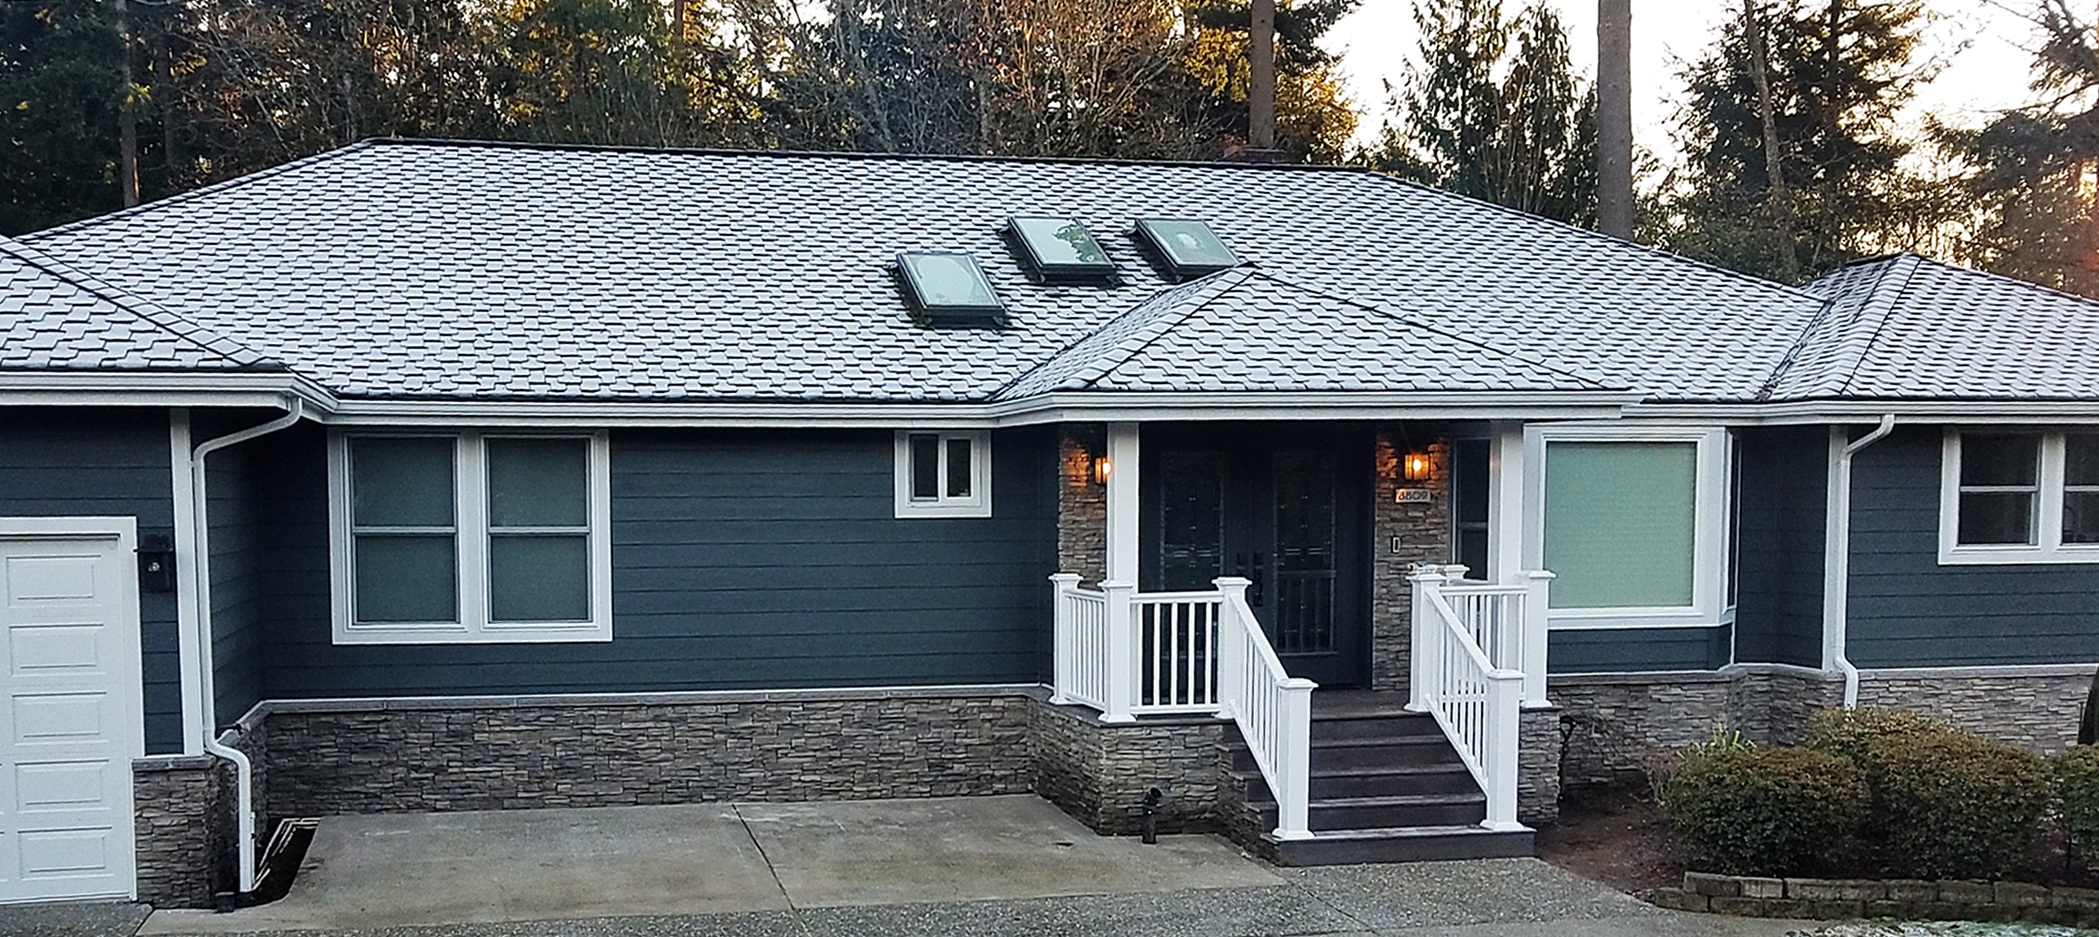 Pictured: James Hardie Fiber Cement Color Plus Siding (color: Iron Gray)